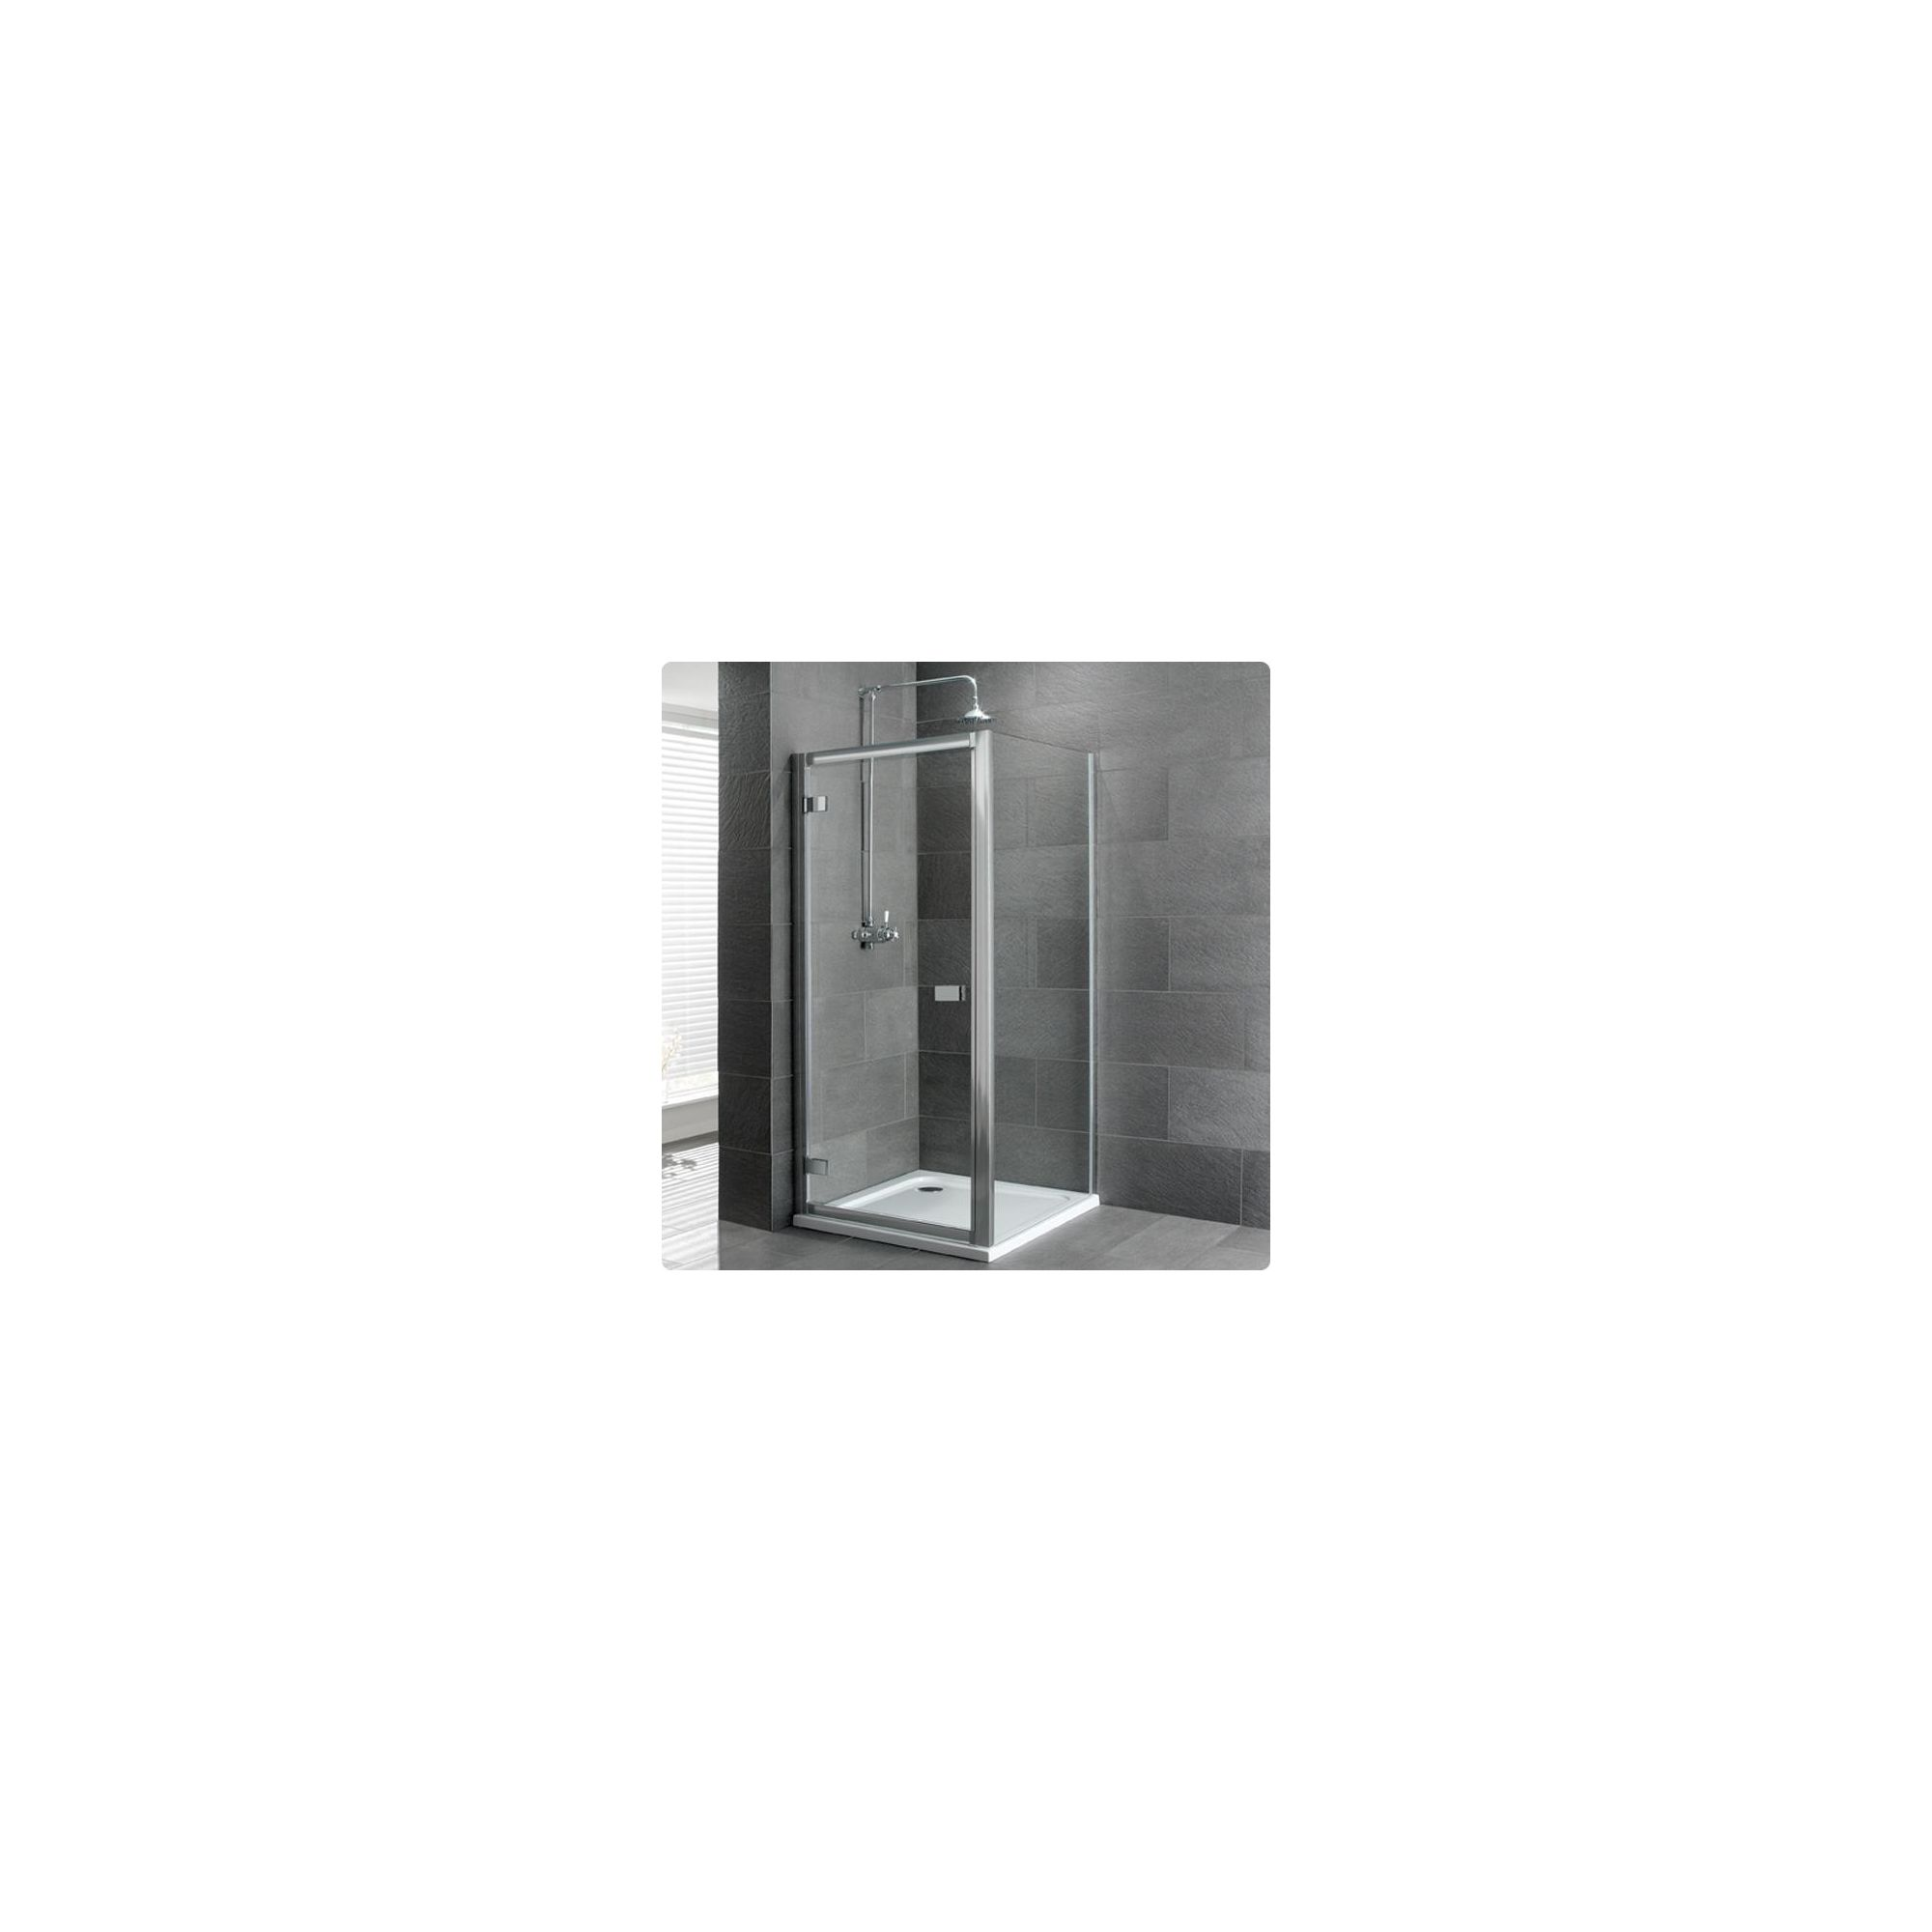 Duchy Select Silver Hinged Door Shower Enclosure, 800mm x 700mm, Standard Tray, 6mm Glass at Tescos Direct